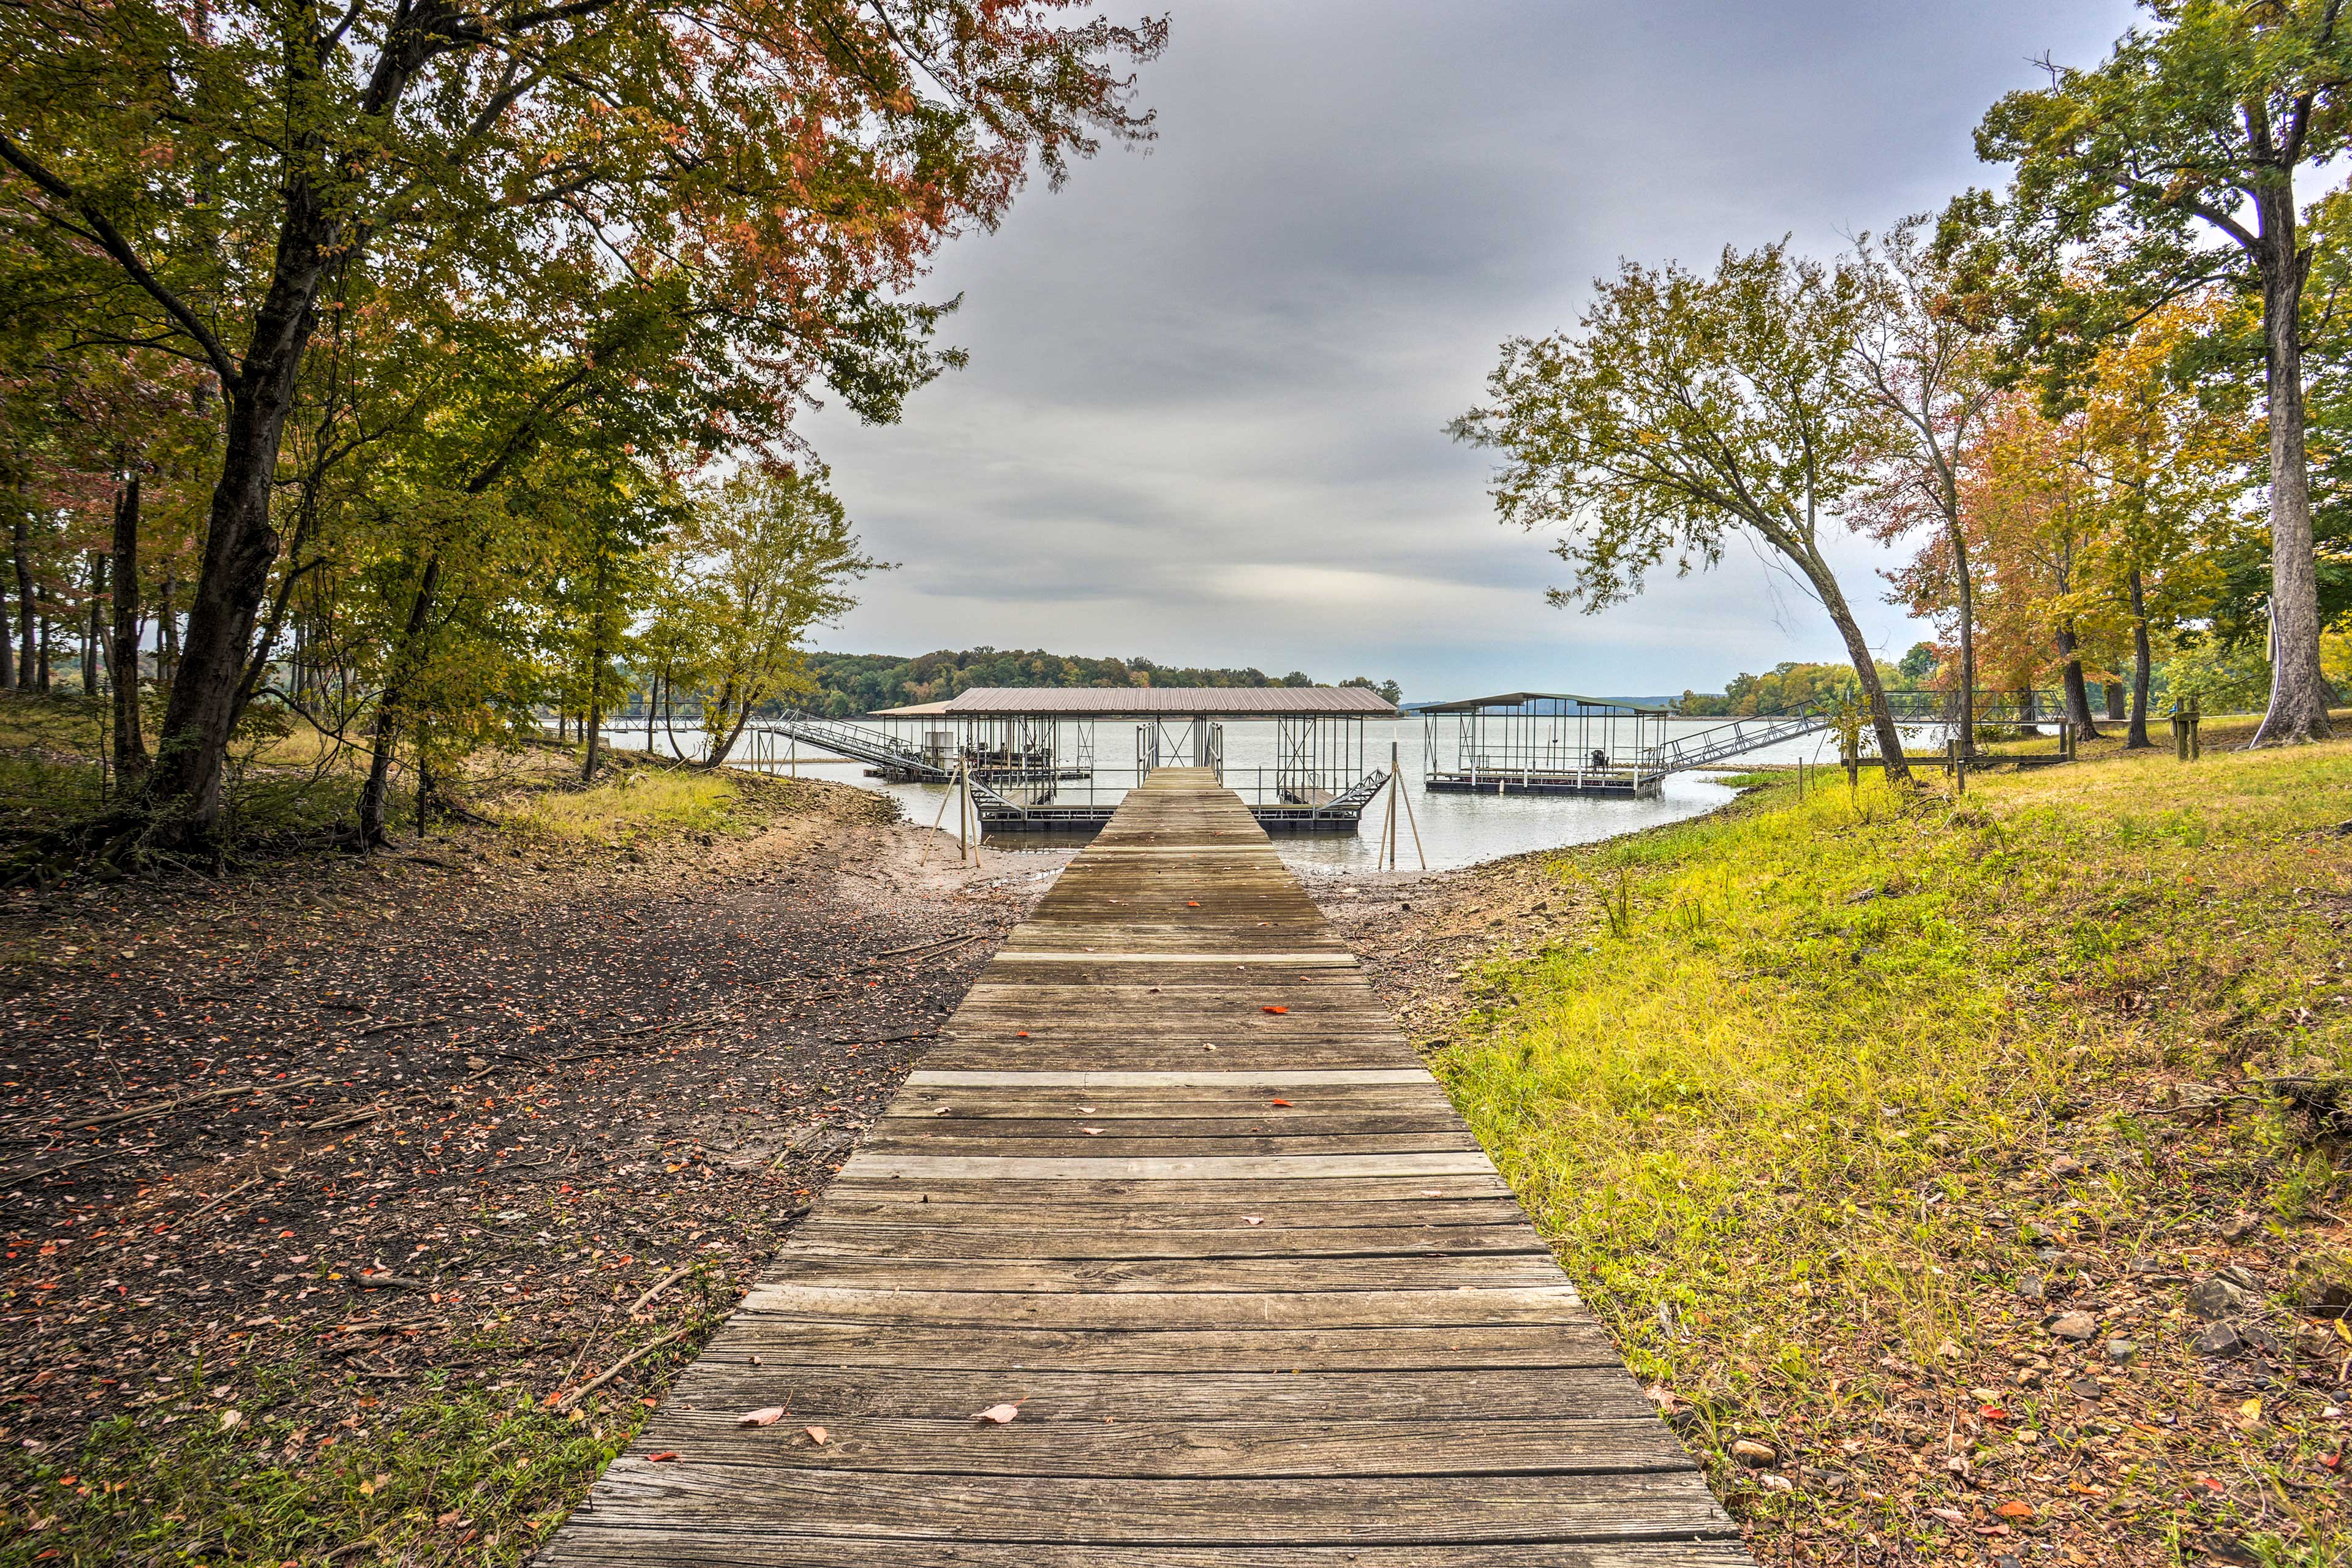 Stroll down to the dock for some lakefront fun!